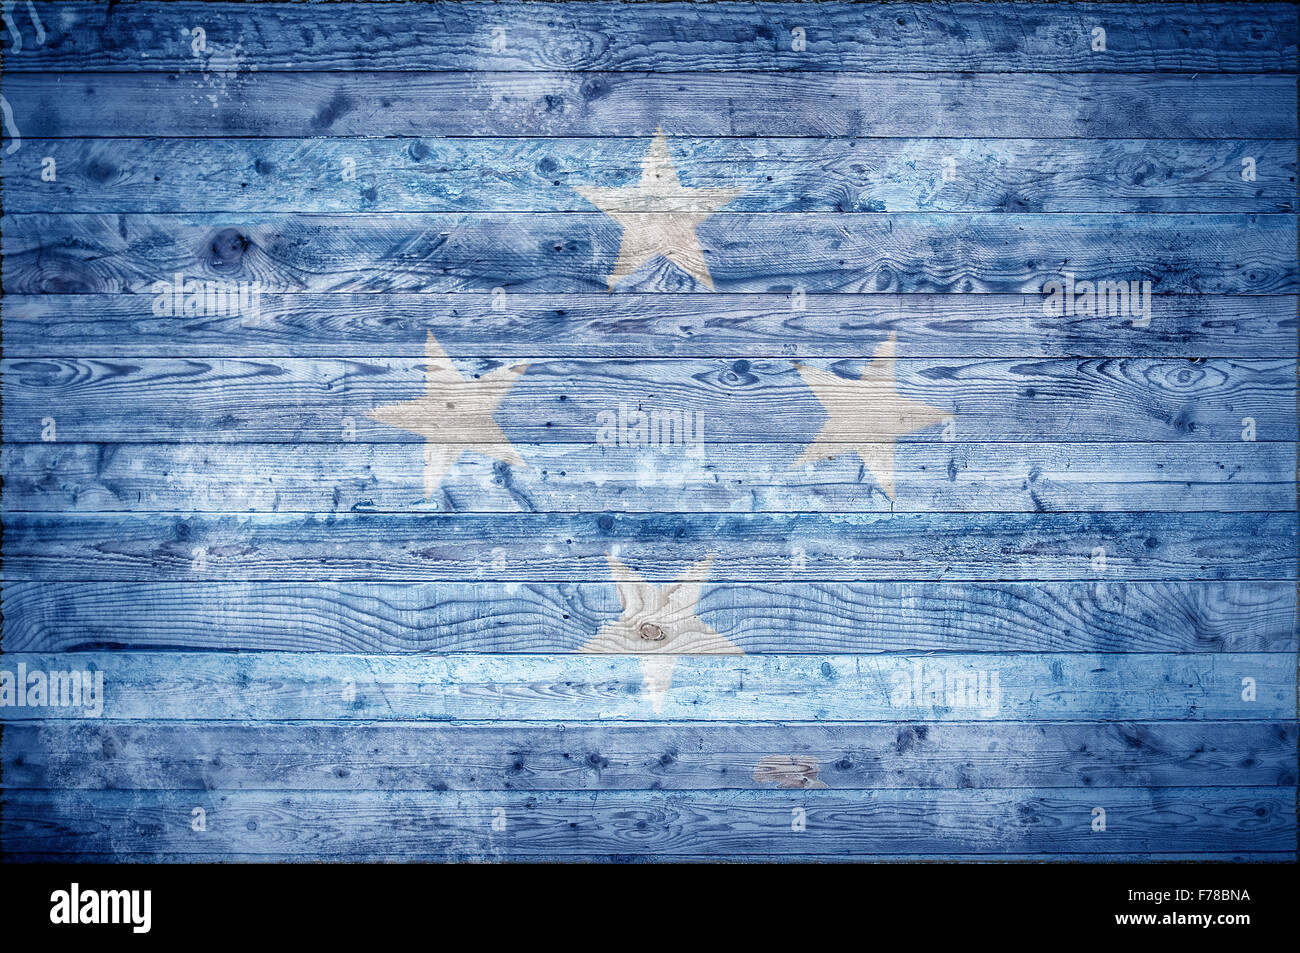 A vignetted background image of the flag of Micronesia painted onto wooden boards of a wall or floor. - Stock Image